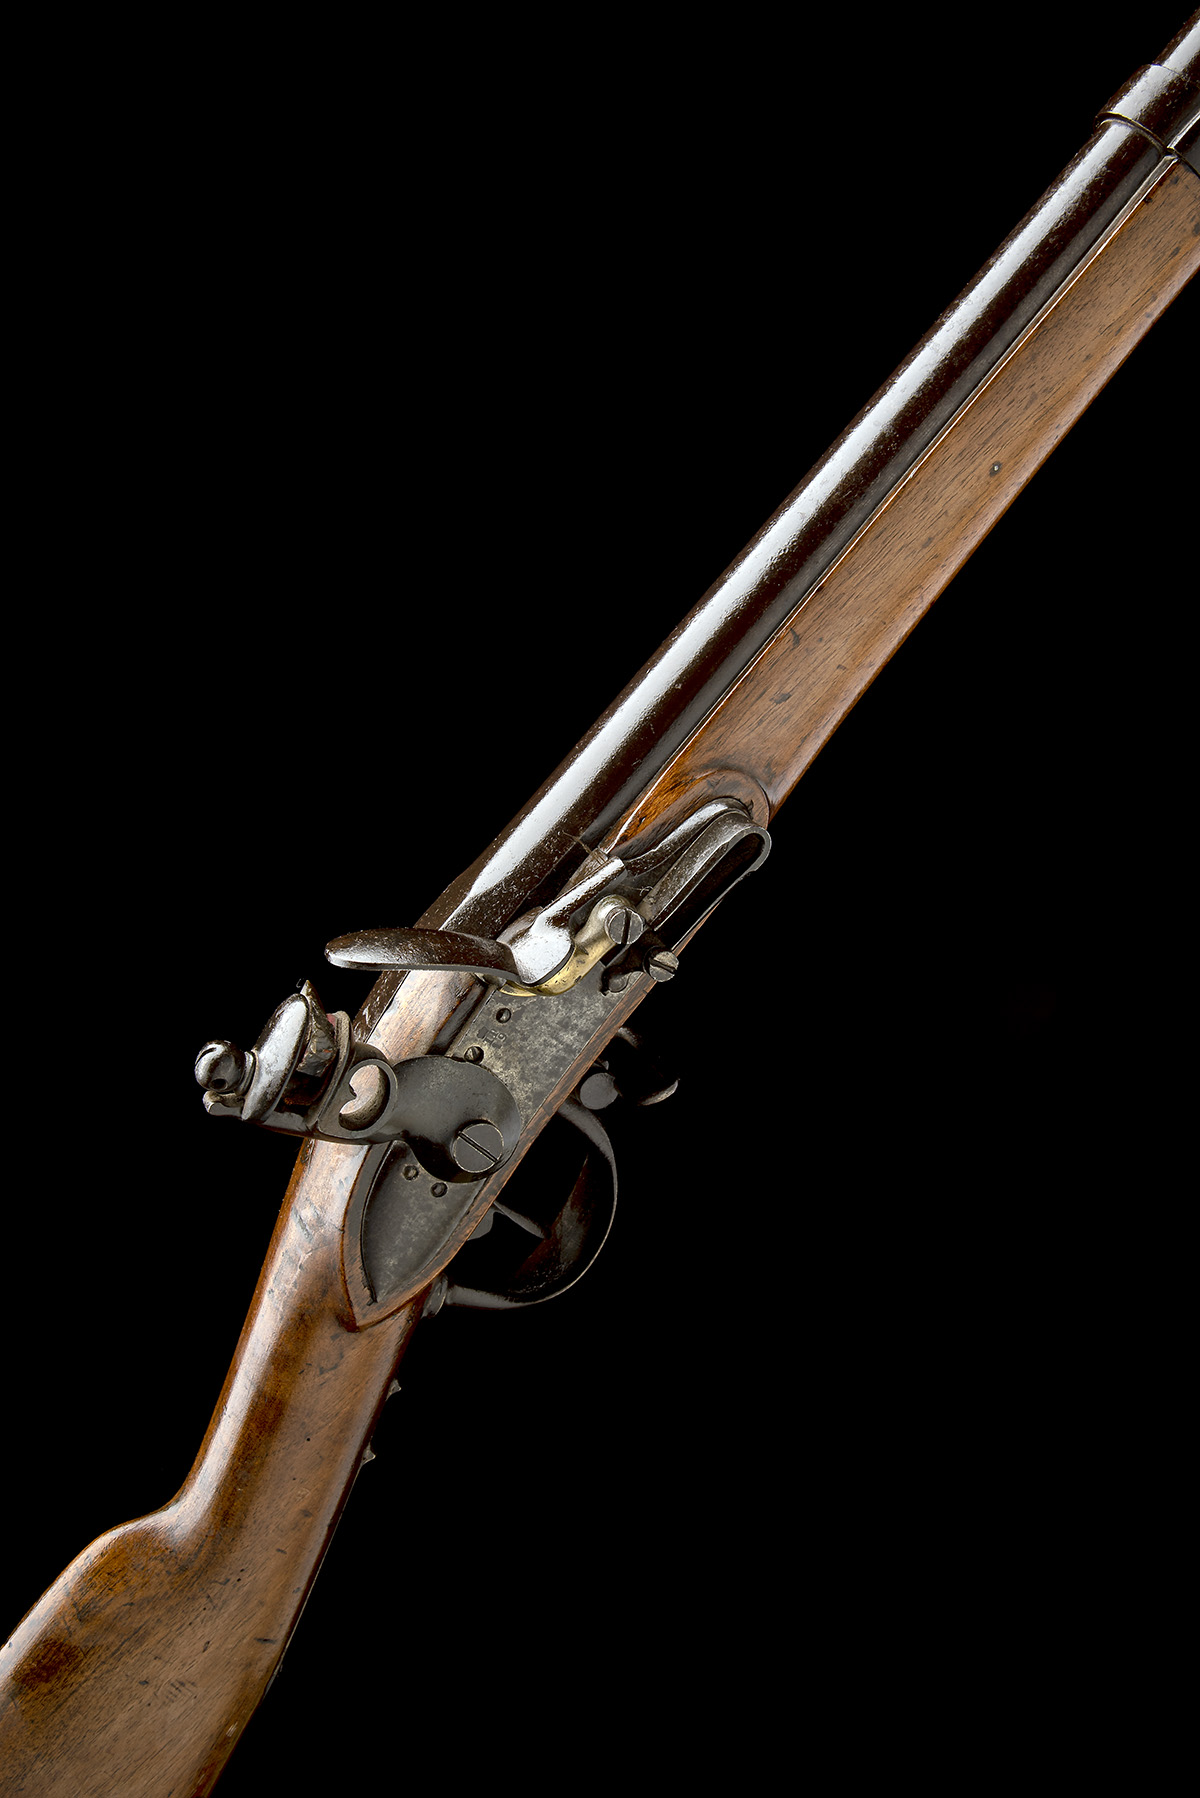 A GOOD .69 FLINTLOCK MUSKET, UNSIGNED, MODEL 'BELGIAN M1815 CHARLEVILLE', serial no. M2178, dated